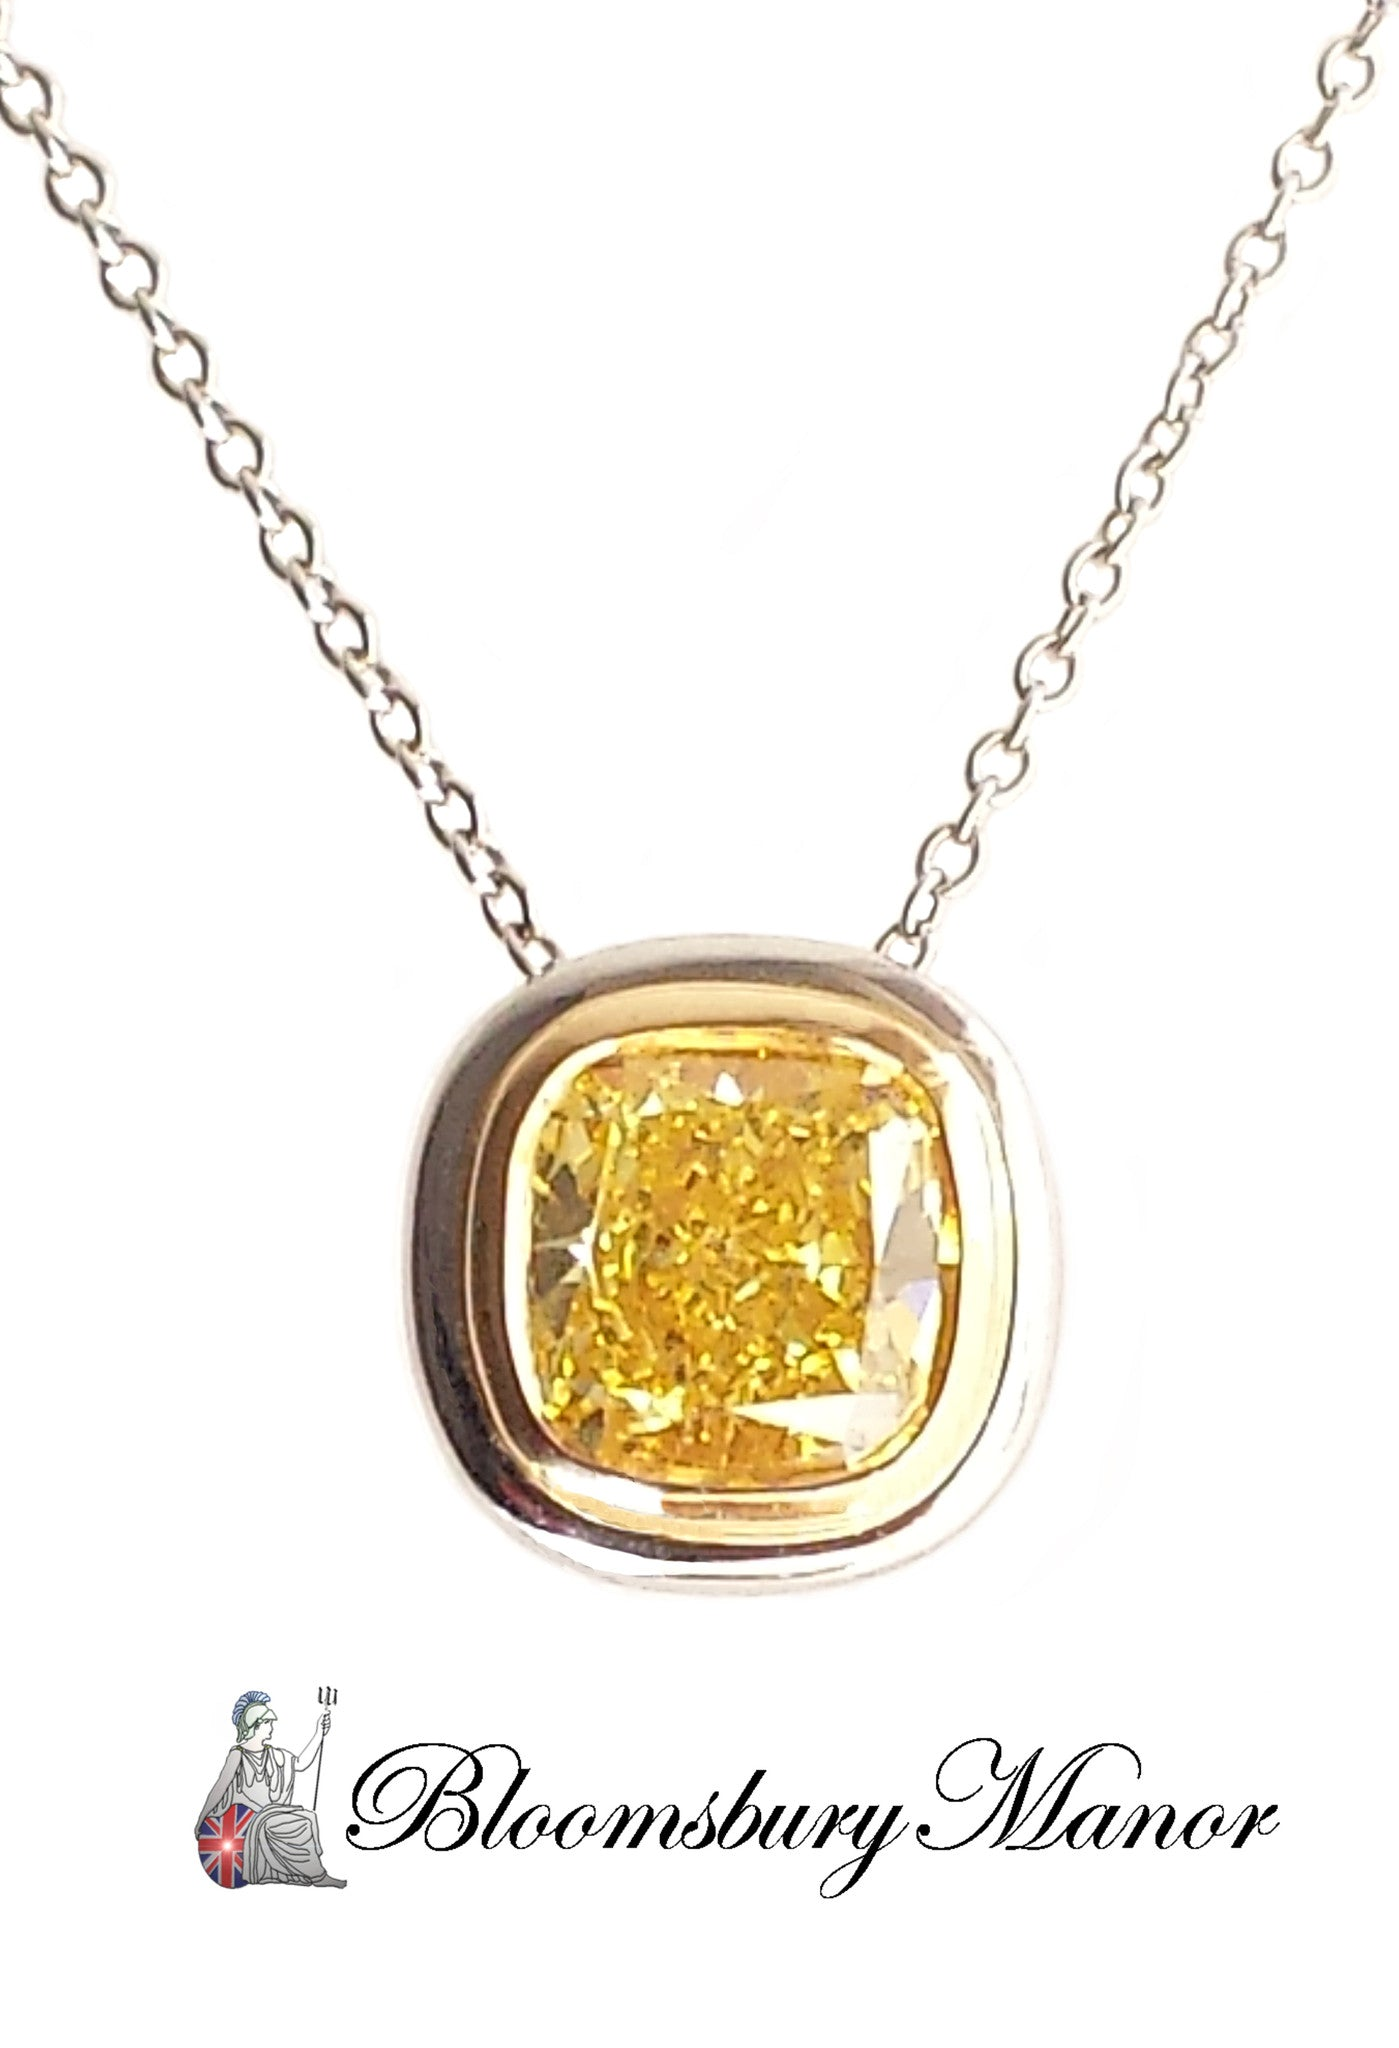 Tiffany co bezet set 152ct fvvvs2 fancy vivid yellow diamond tiffany co bezet set 152ct fvvvs2 fancy vivid yellow diamond pendant mozeypictures Image collections